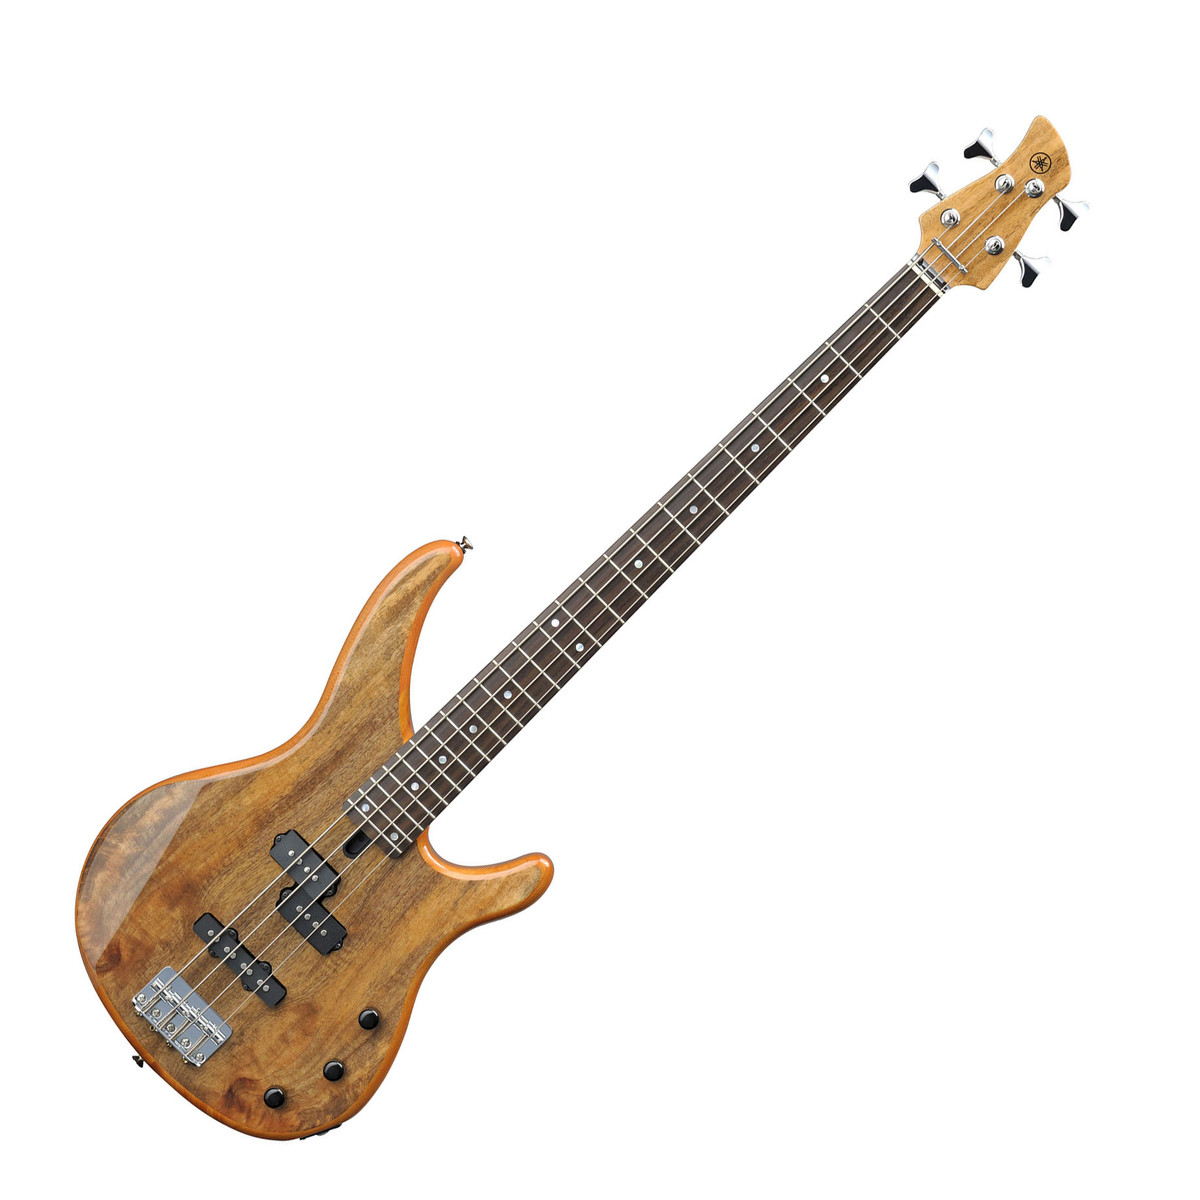 Yamaha Trbx Ew Mango Wood  String Electric Bass Guitar Natural